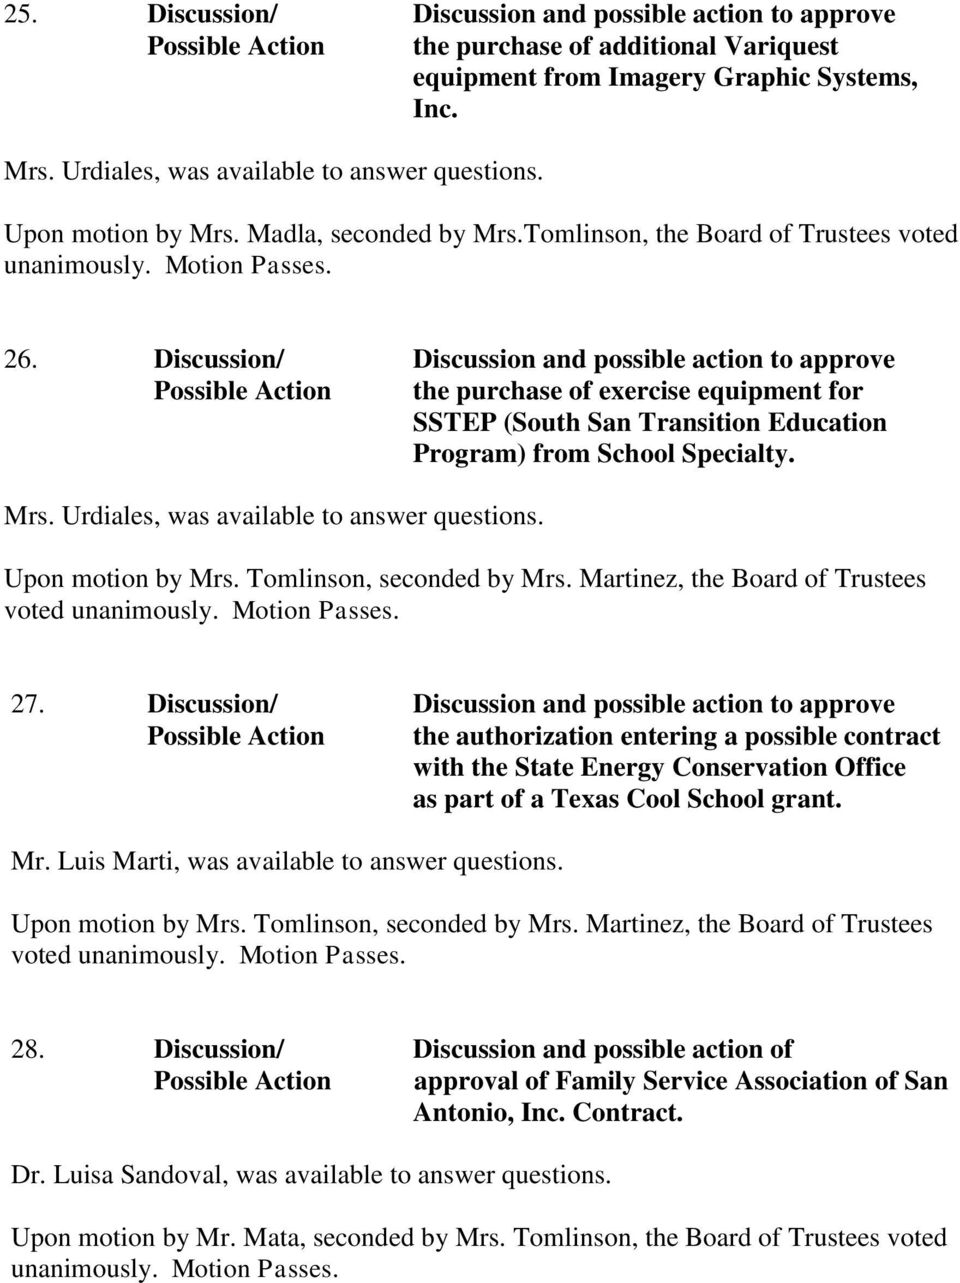 Discussion/ Discussion and possible action to approve Possible Action the purchase of exercise equipment for SSTEP (South San Transition Education Program) from School Specialty. Mrs.